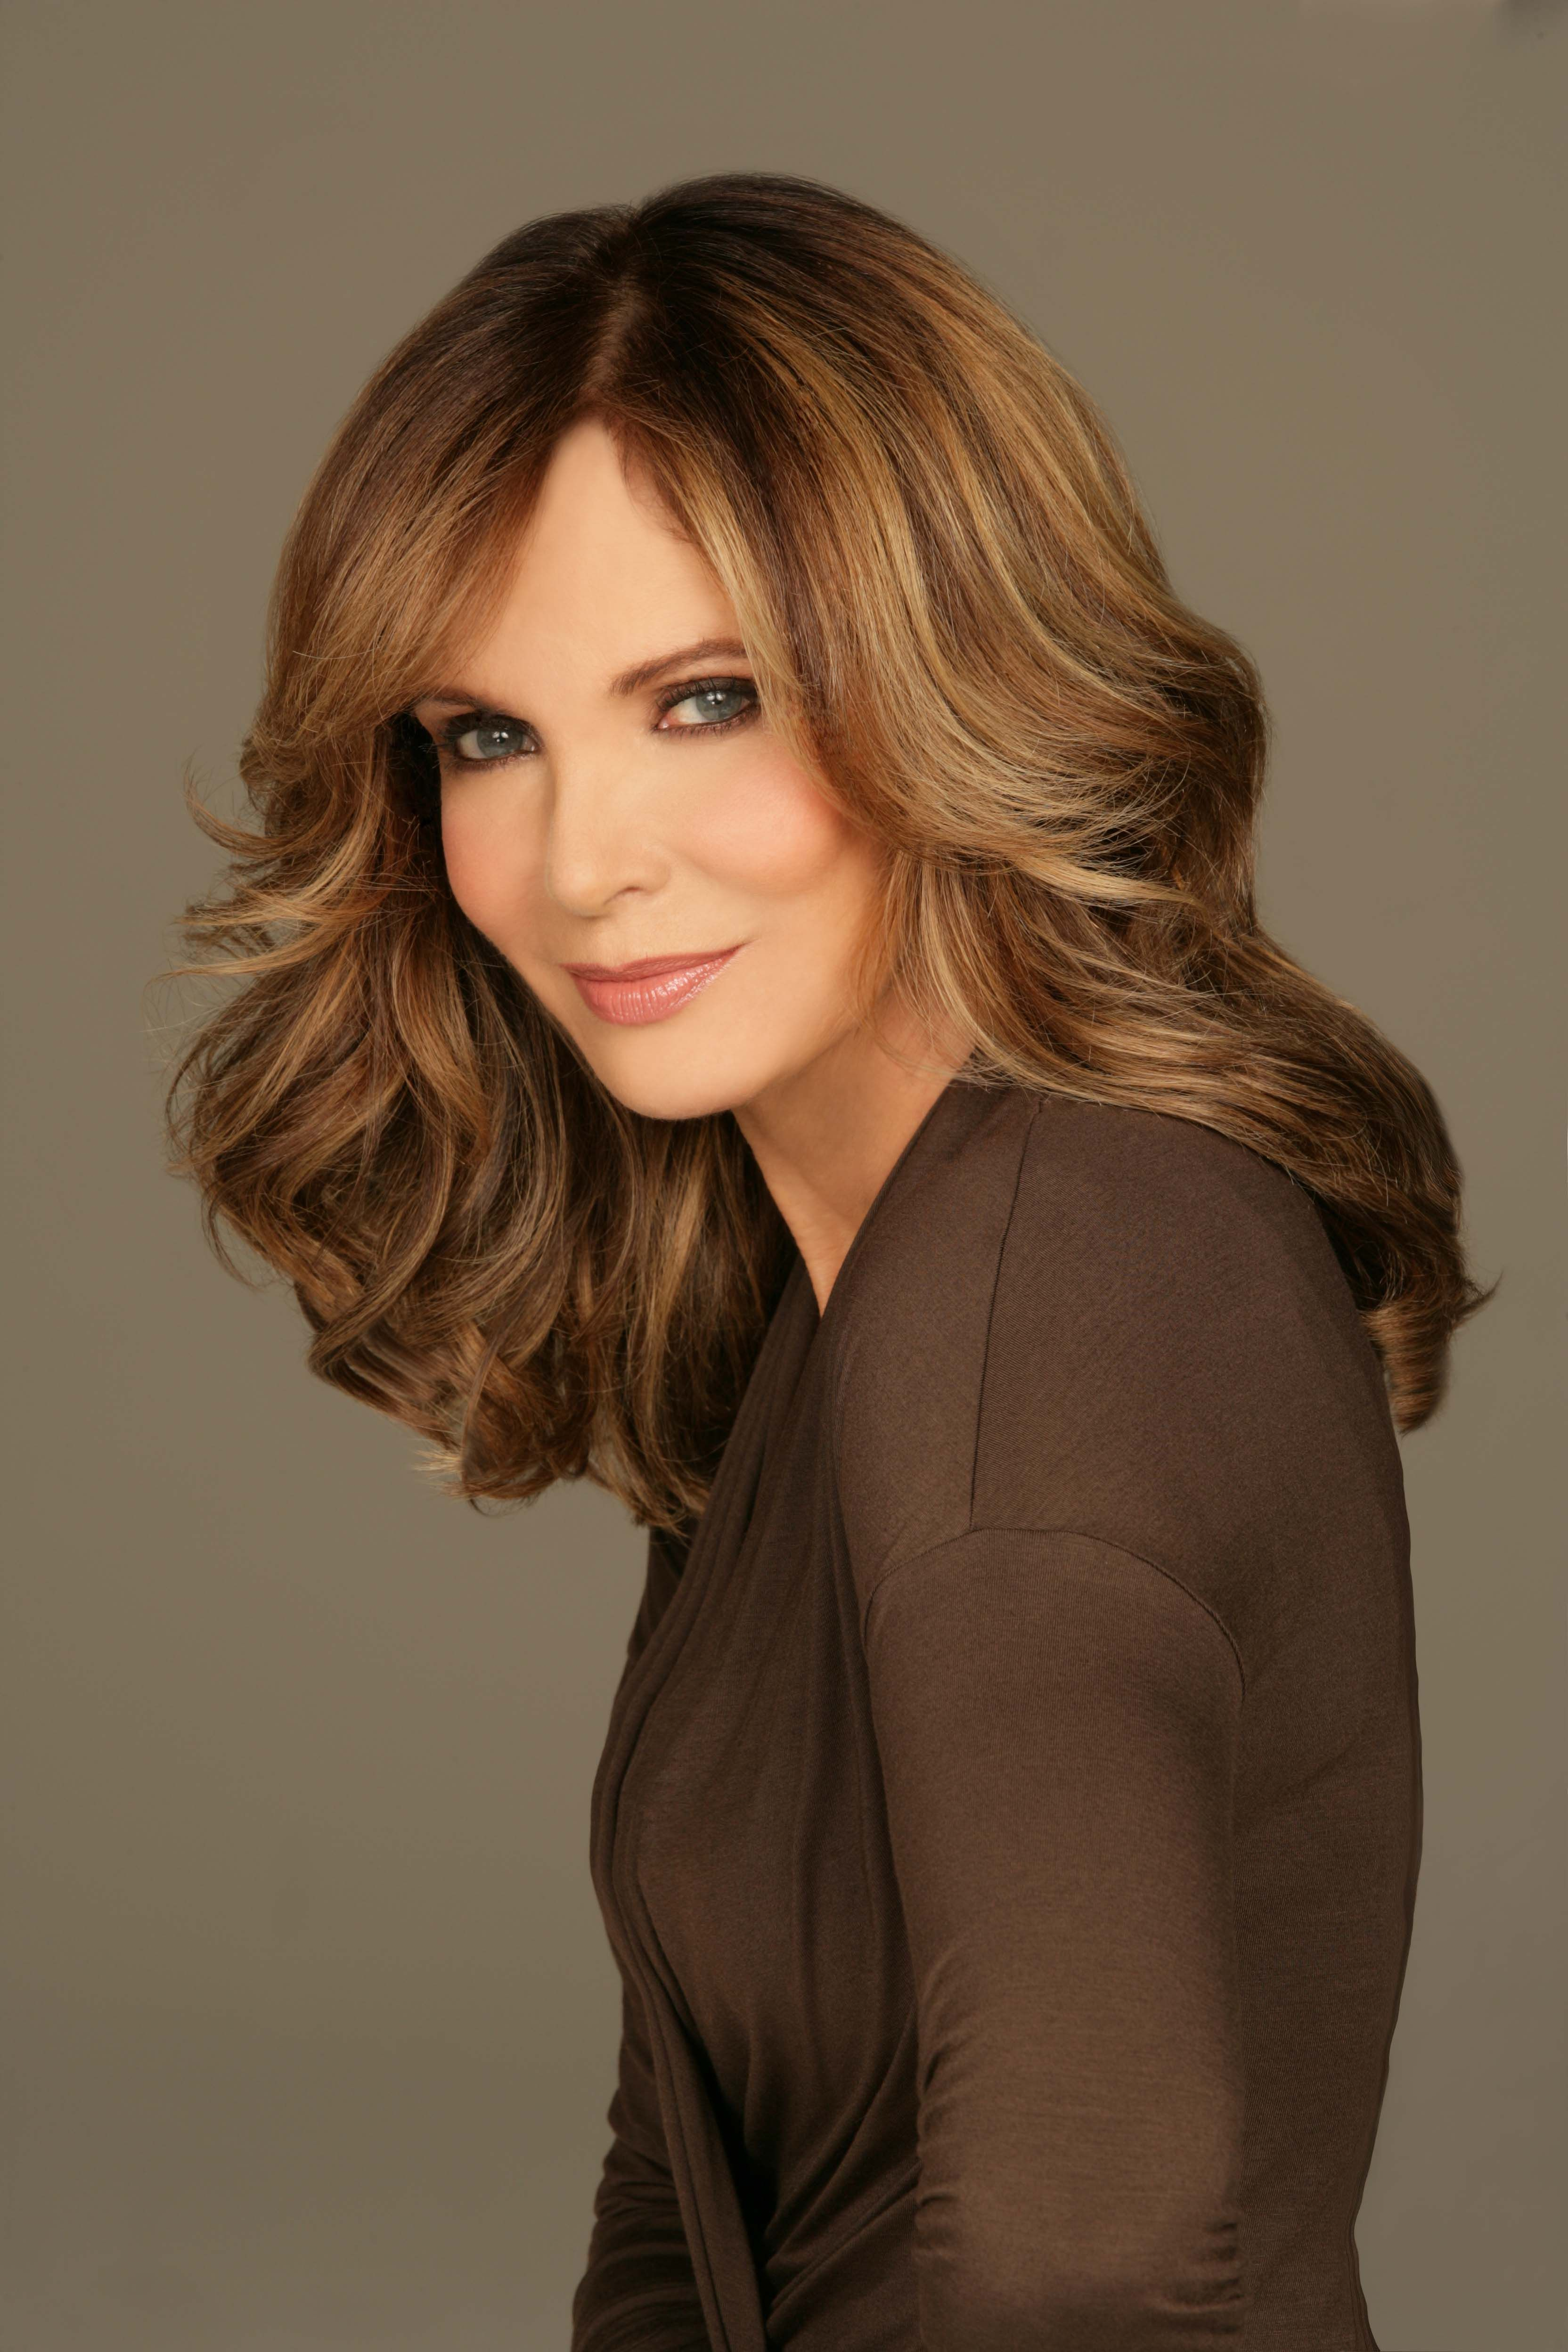 jaclyn smith zippertravel digital edition | attention